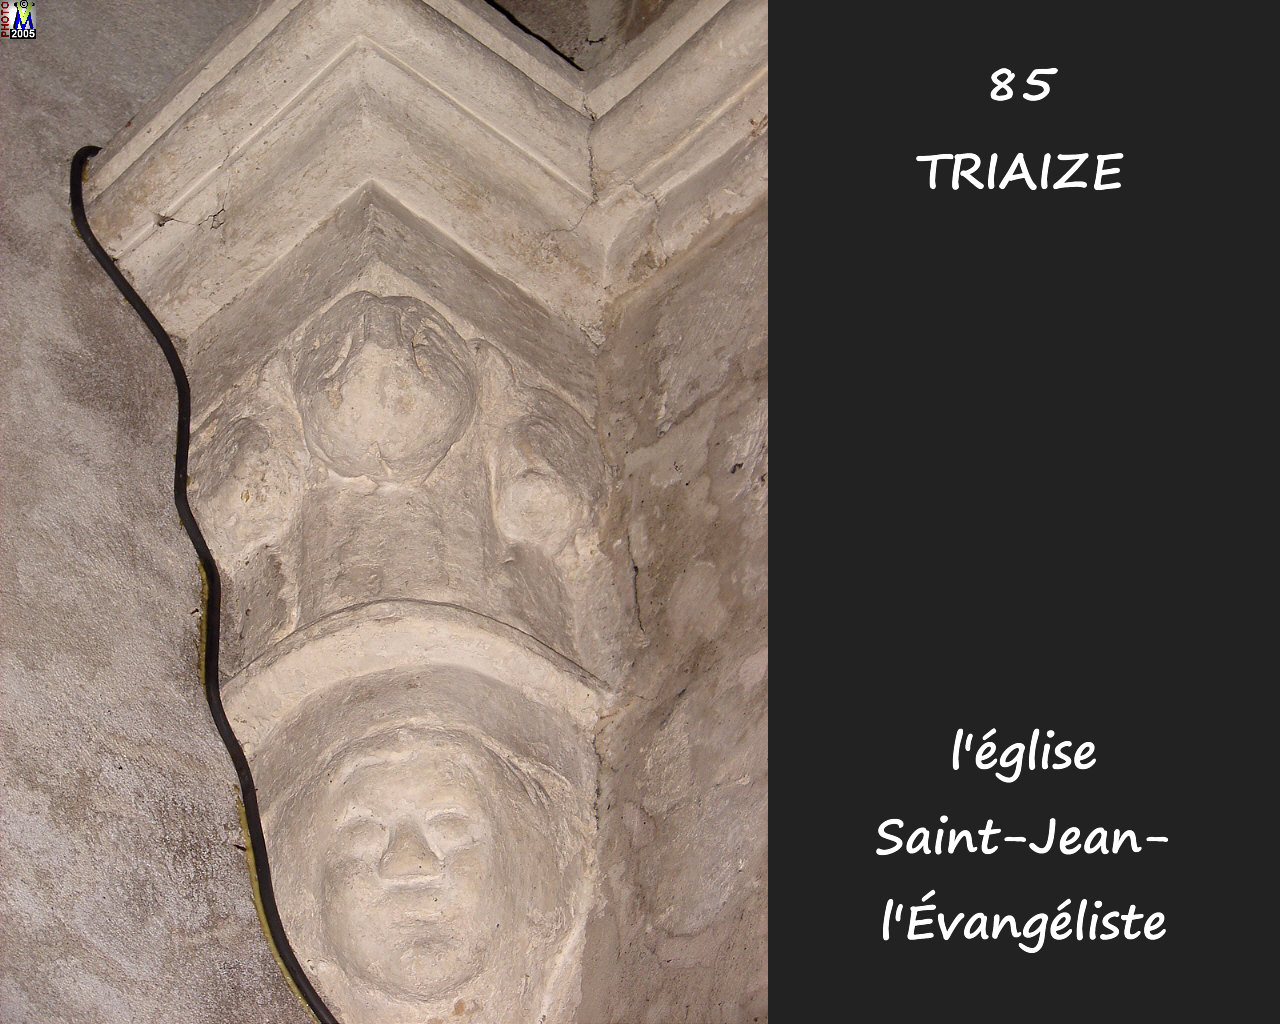 85TRIAIZE_eglise_208.jpg